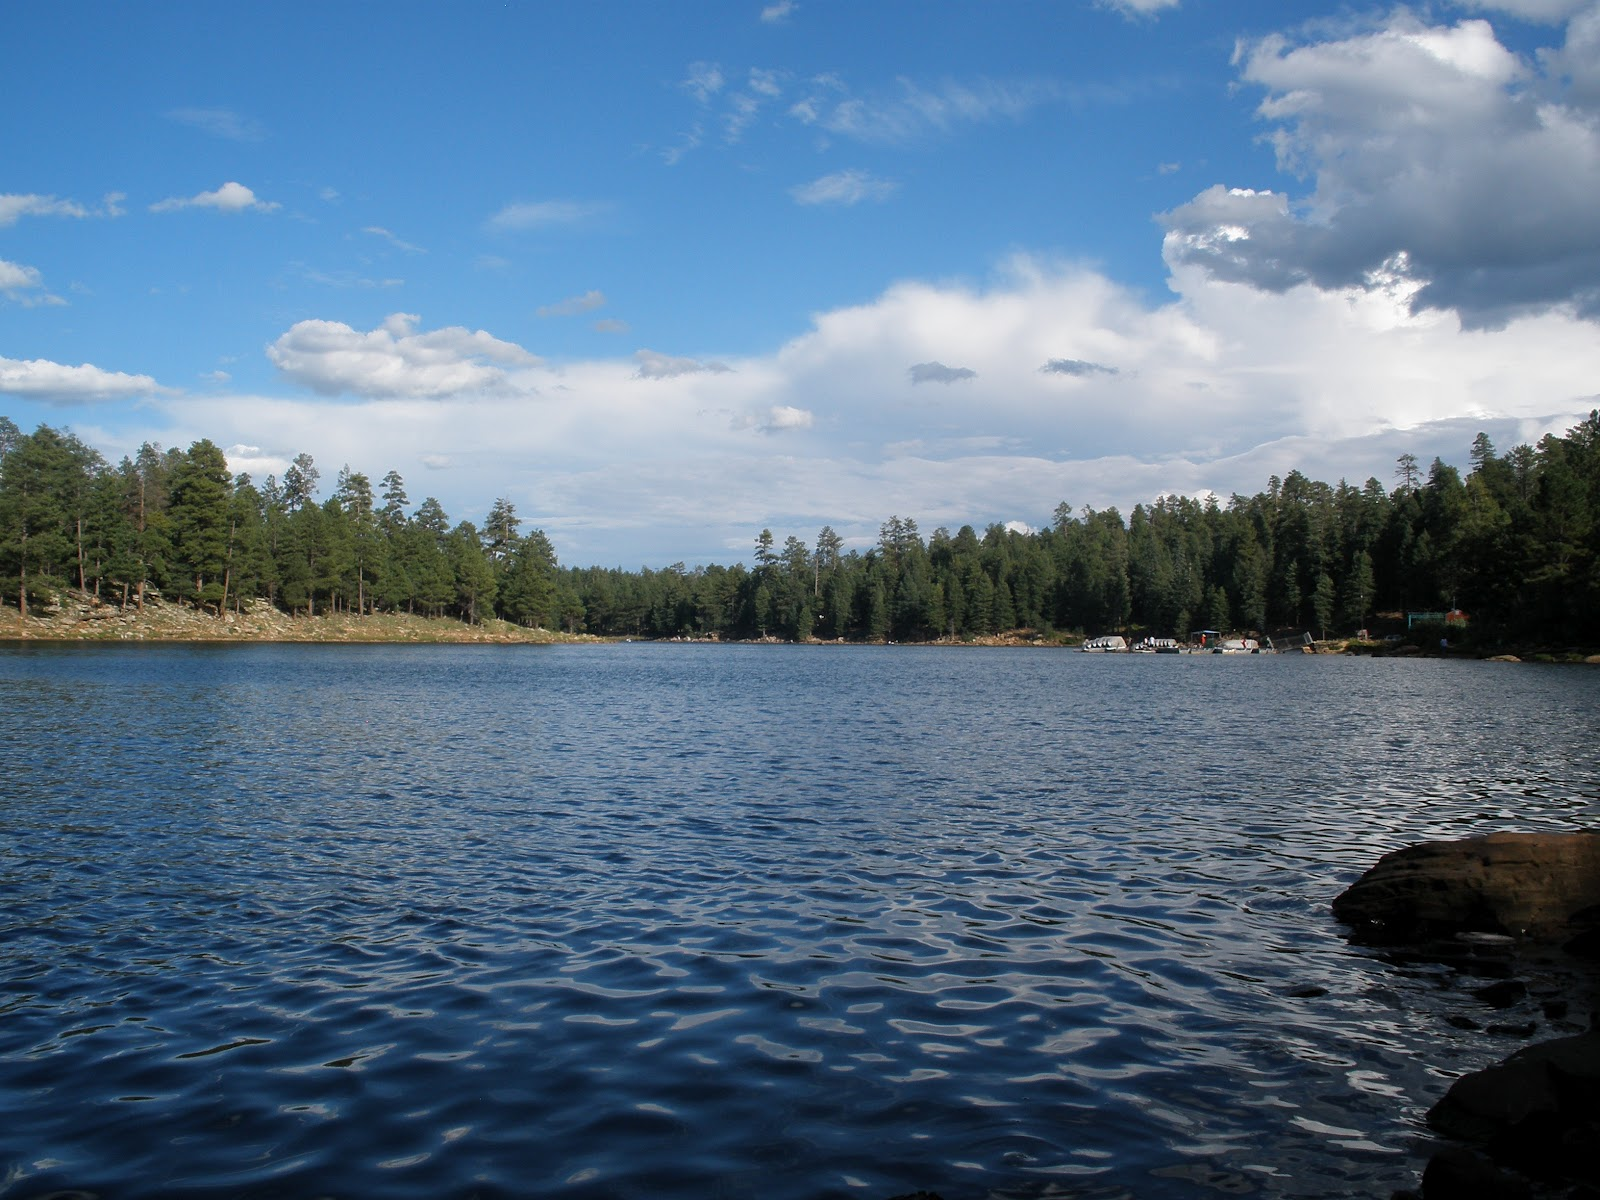 Arizonas rim lakes sitgreaves national forest truck camper adventure woods canyon lake publicscrutiny Choice Image